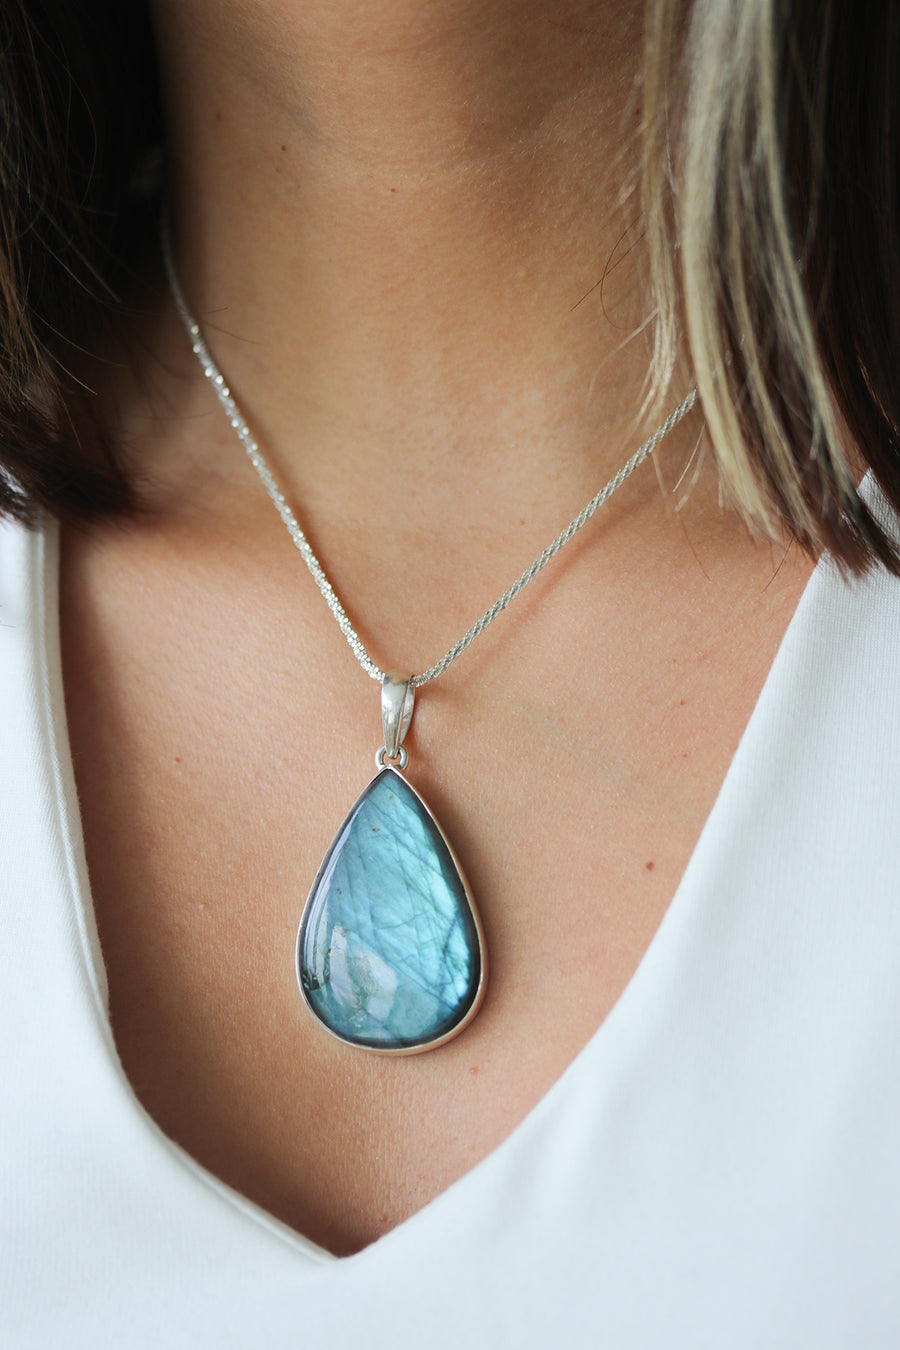 XL Labradorite Necklace